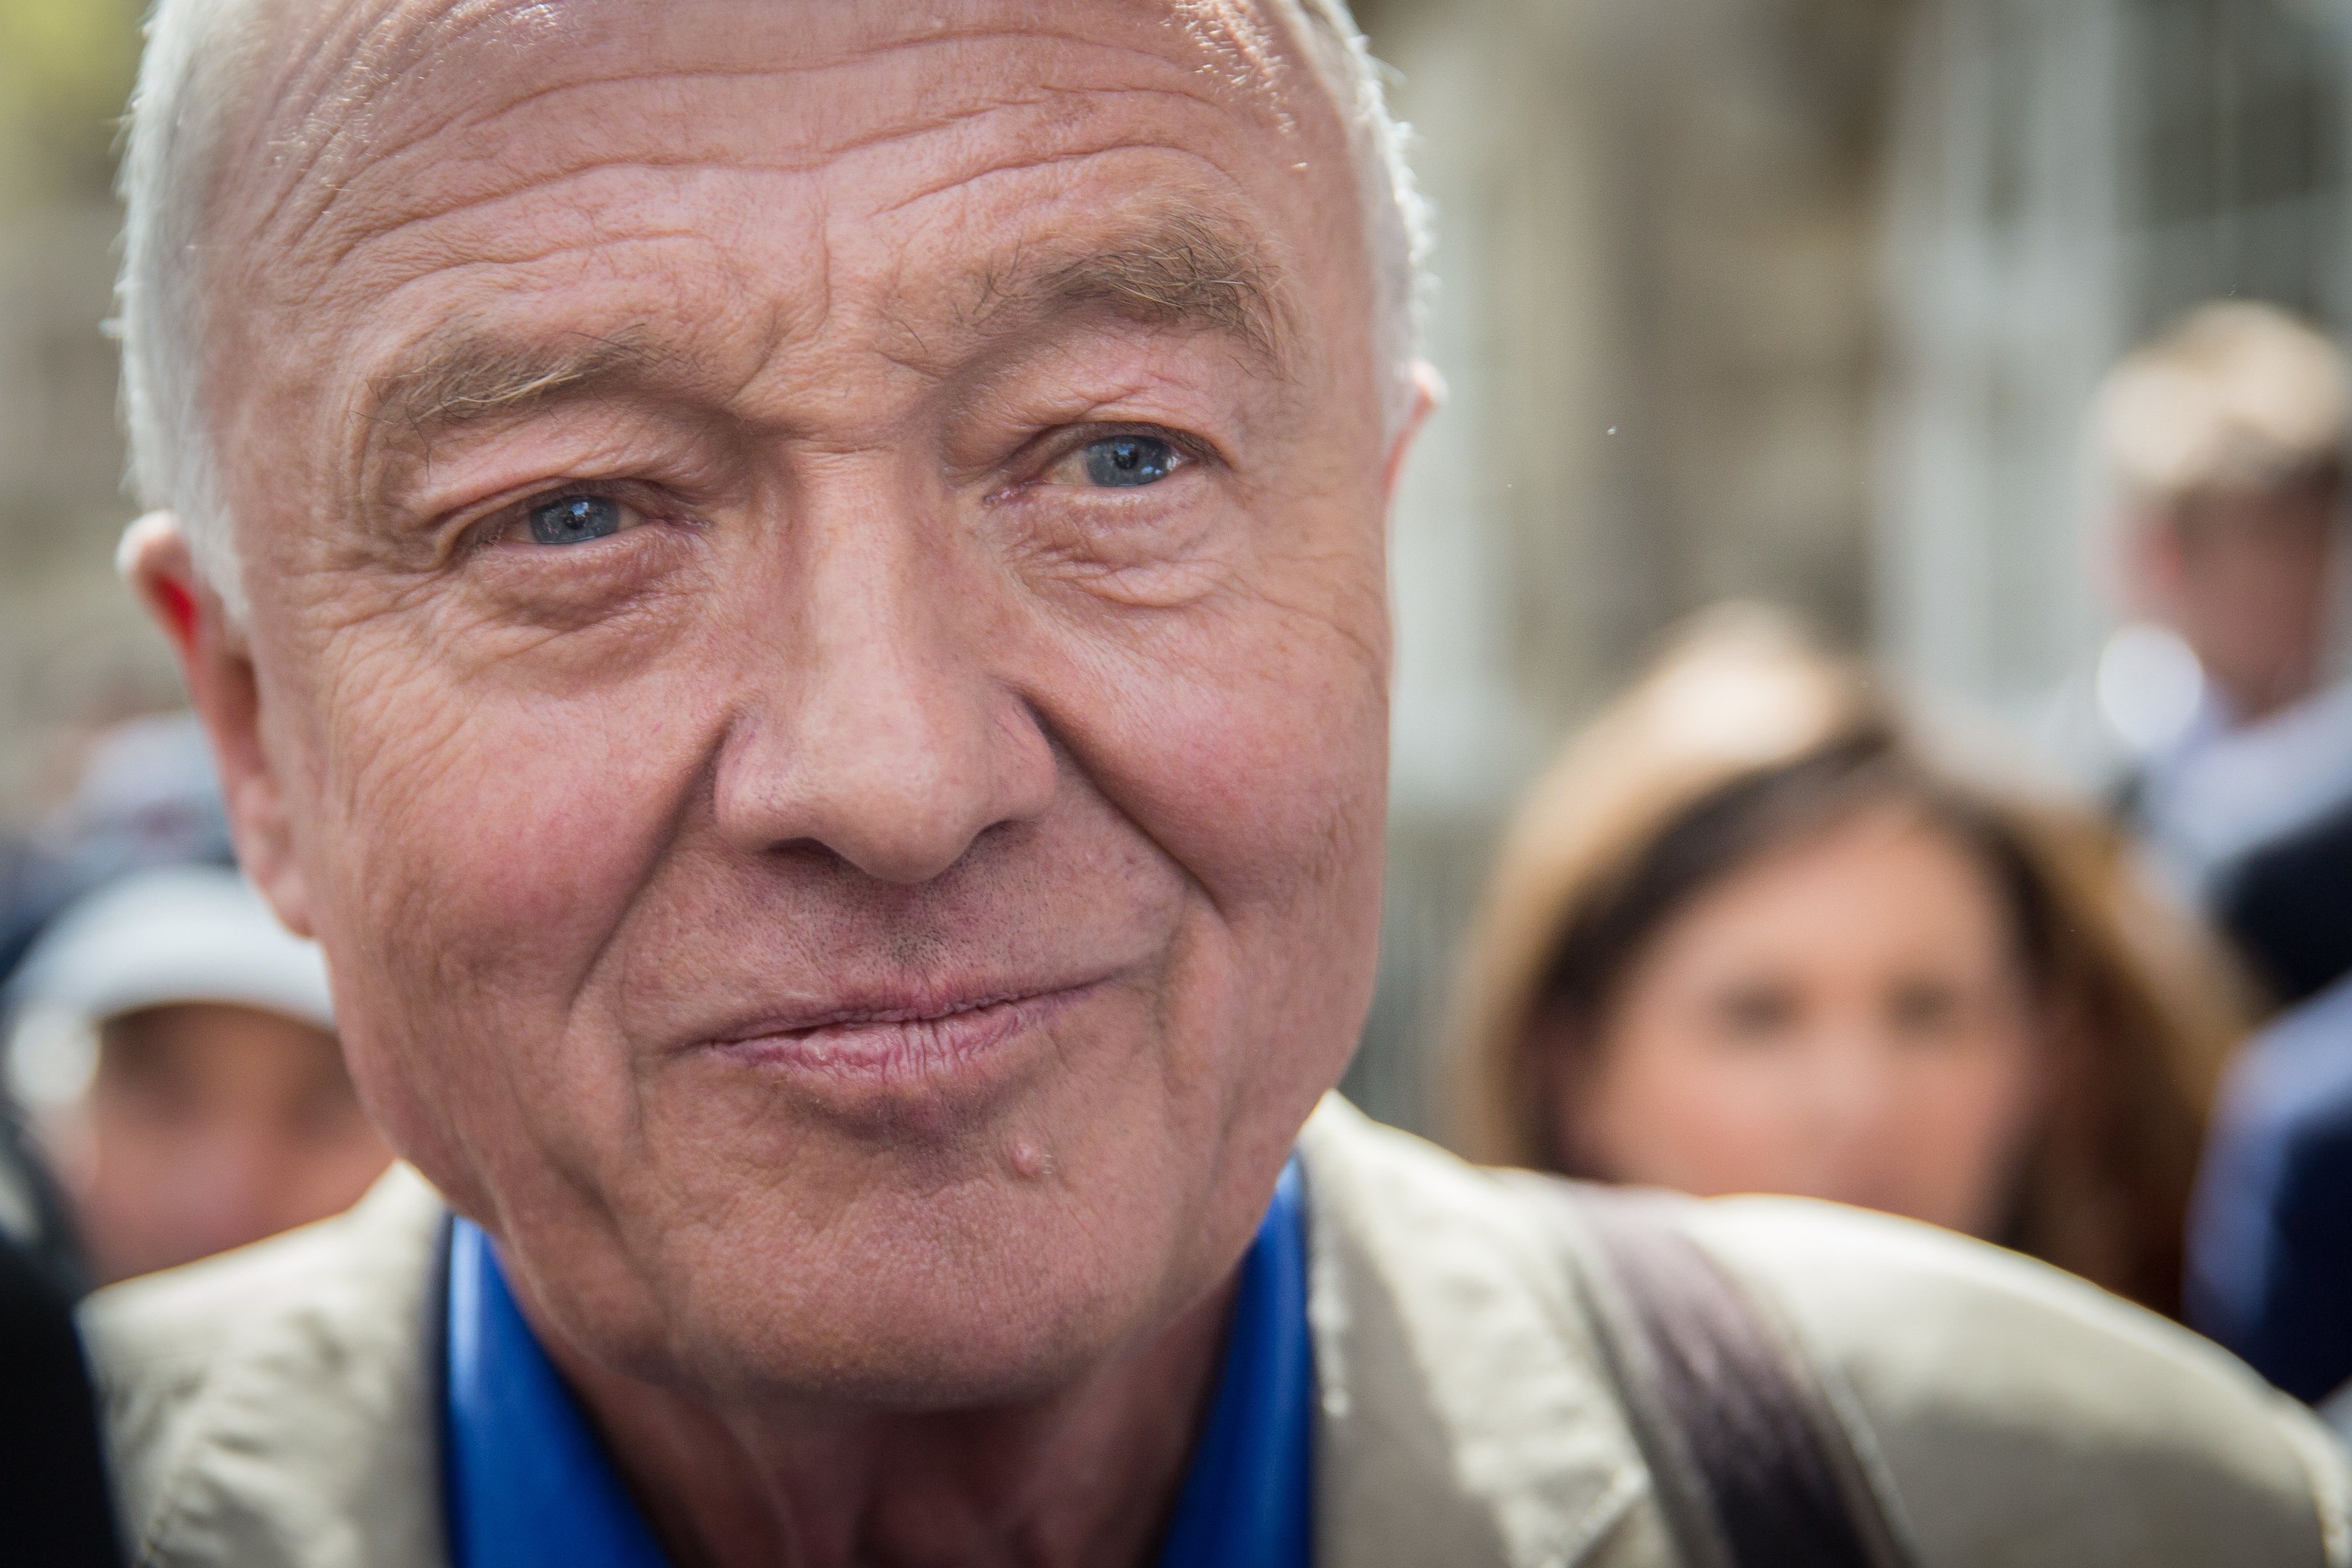 Ken Livingstone has been suspended from Labour Party for comments made while defending Naz Shah.